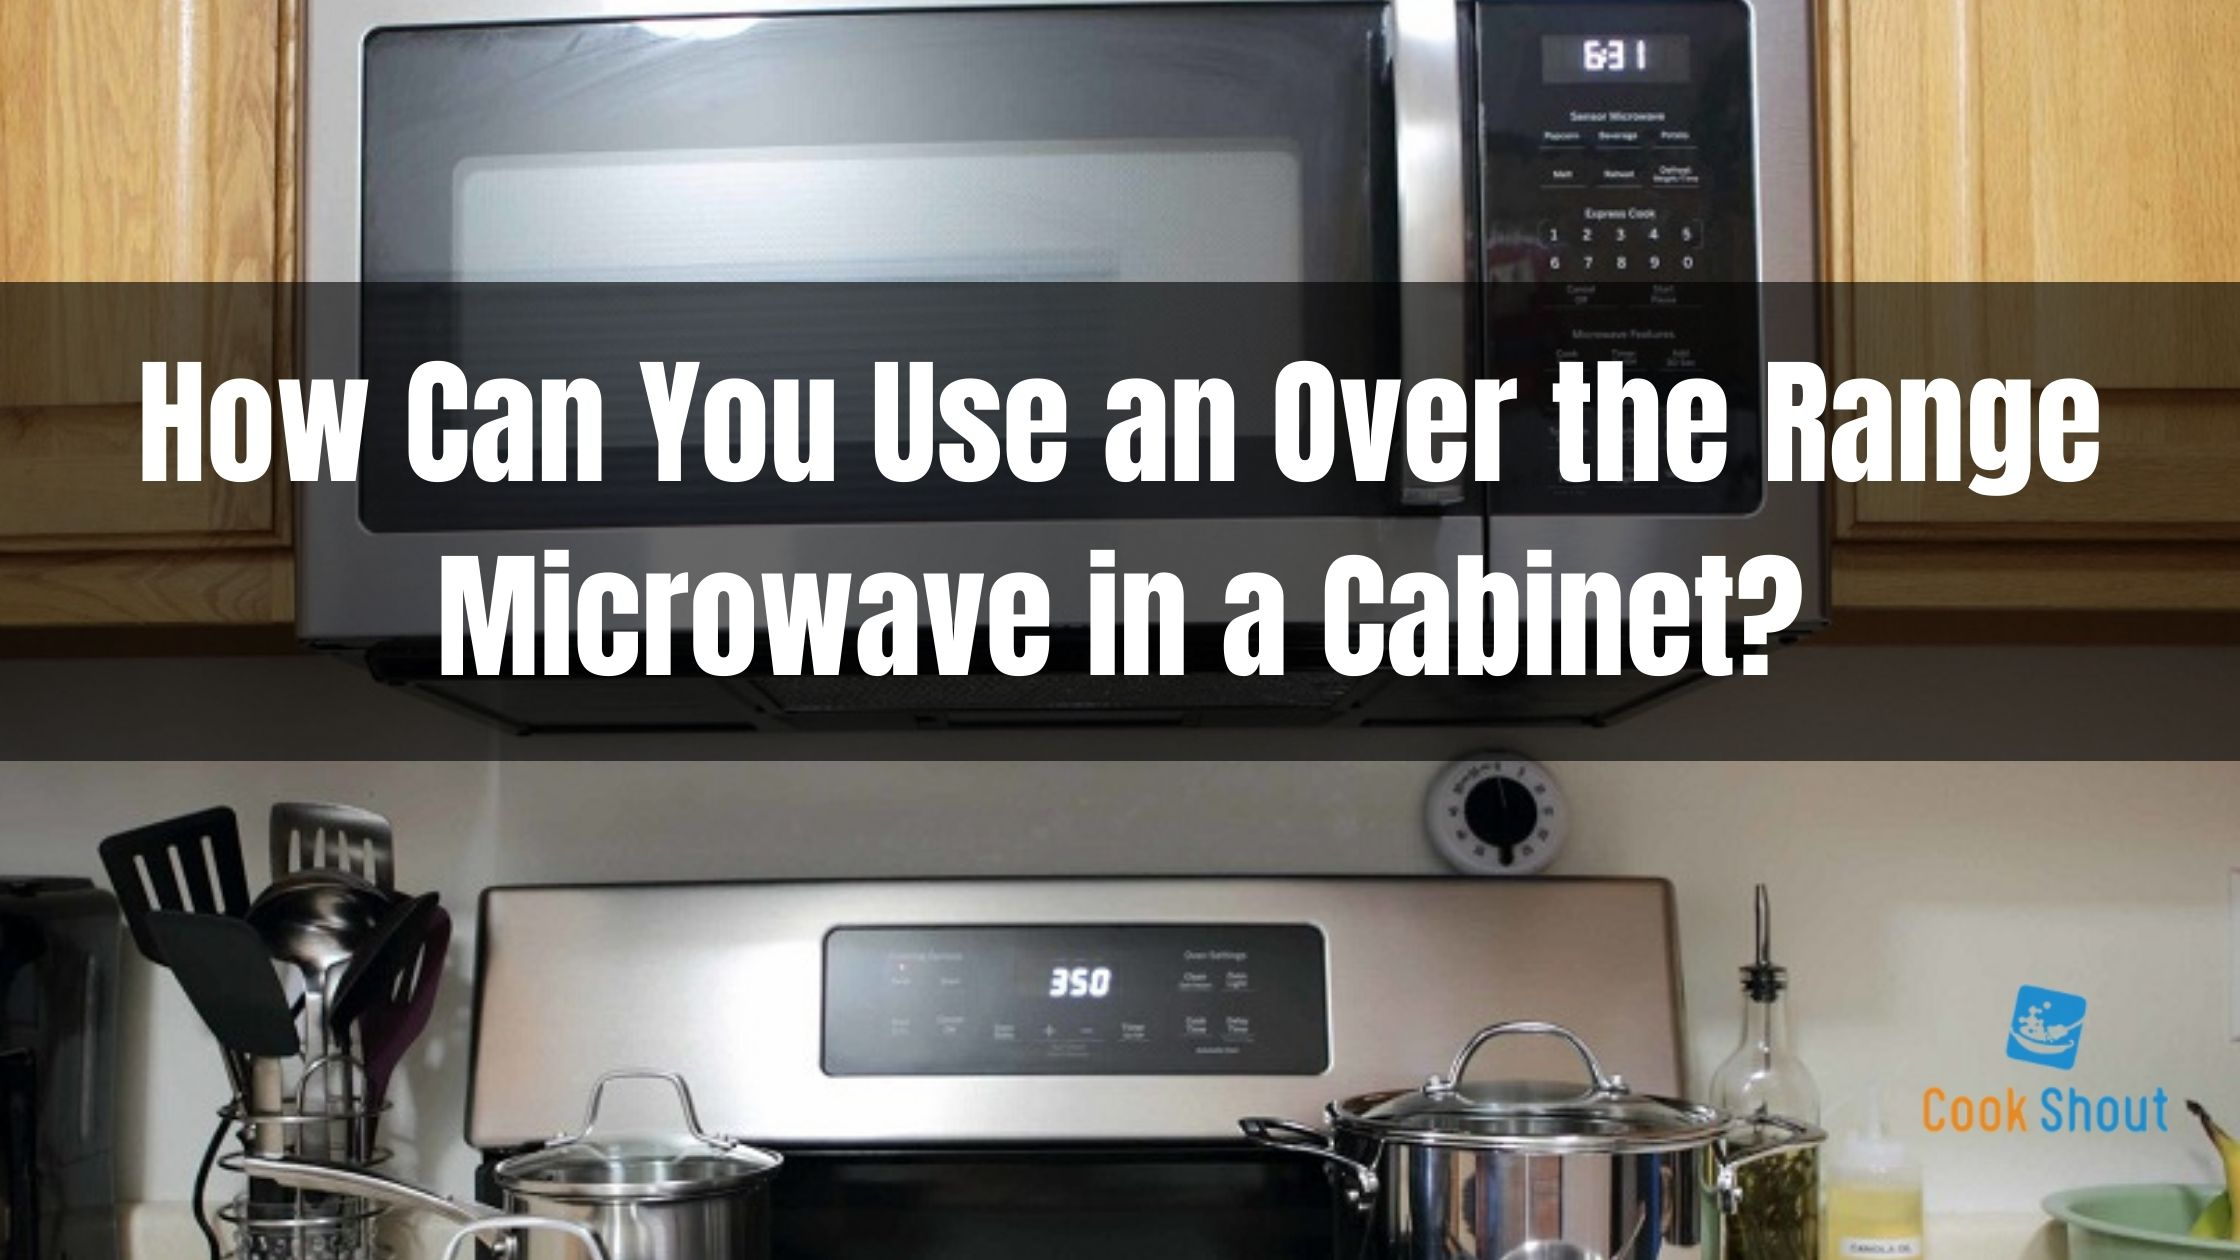 How Can You Use an Over the Range Microwave in a Cabinet?